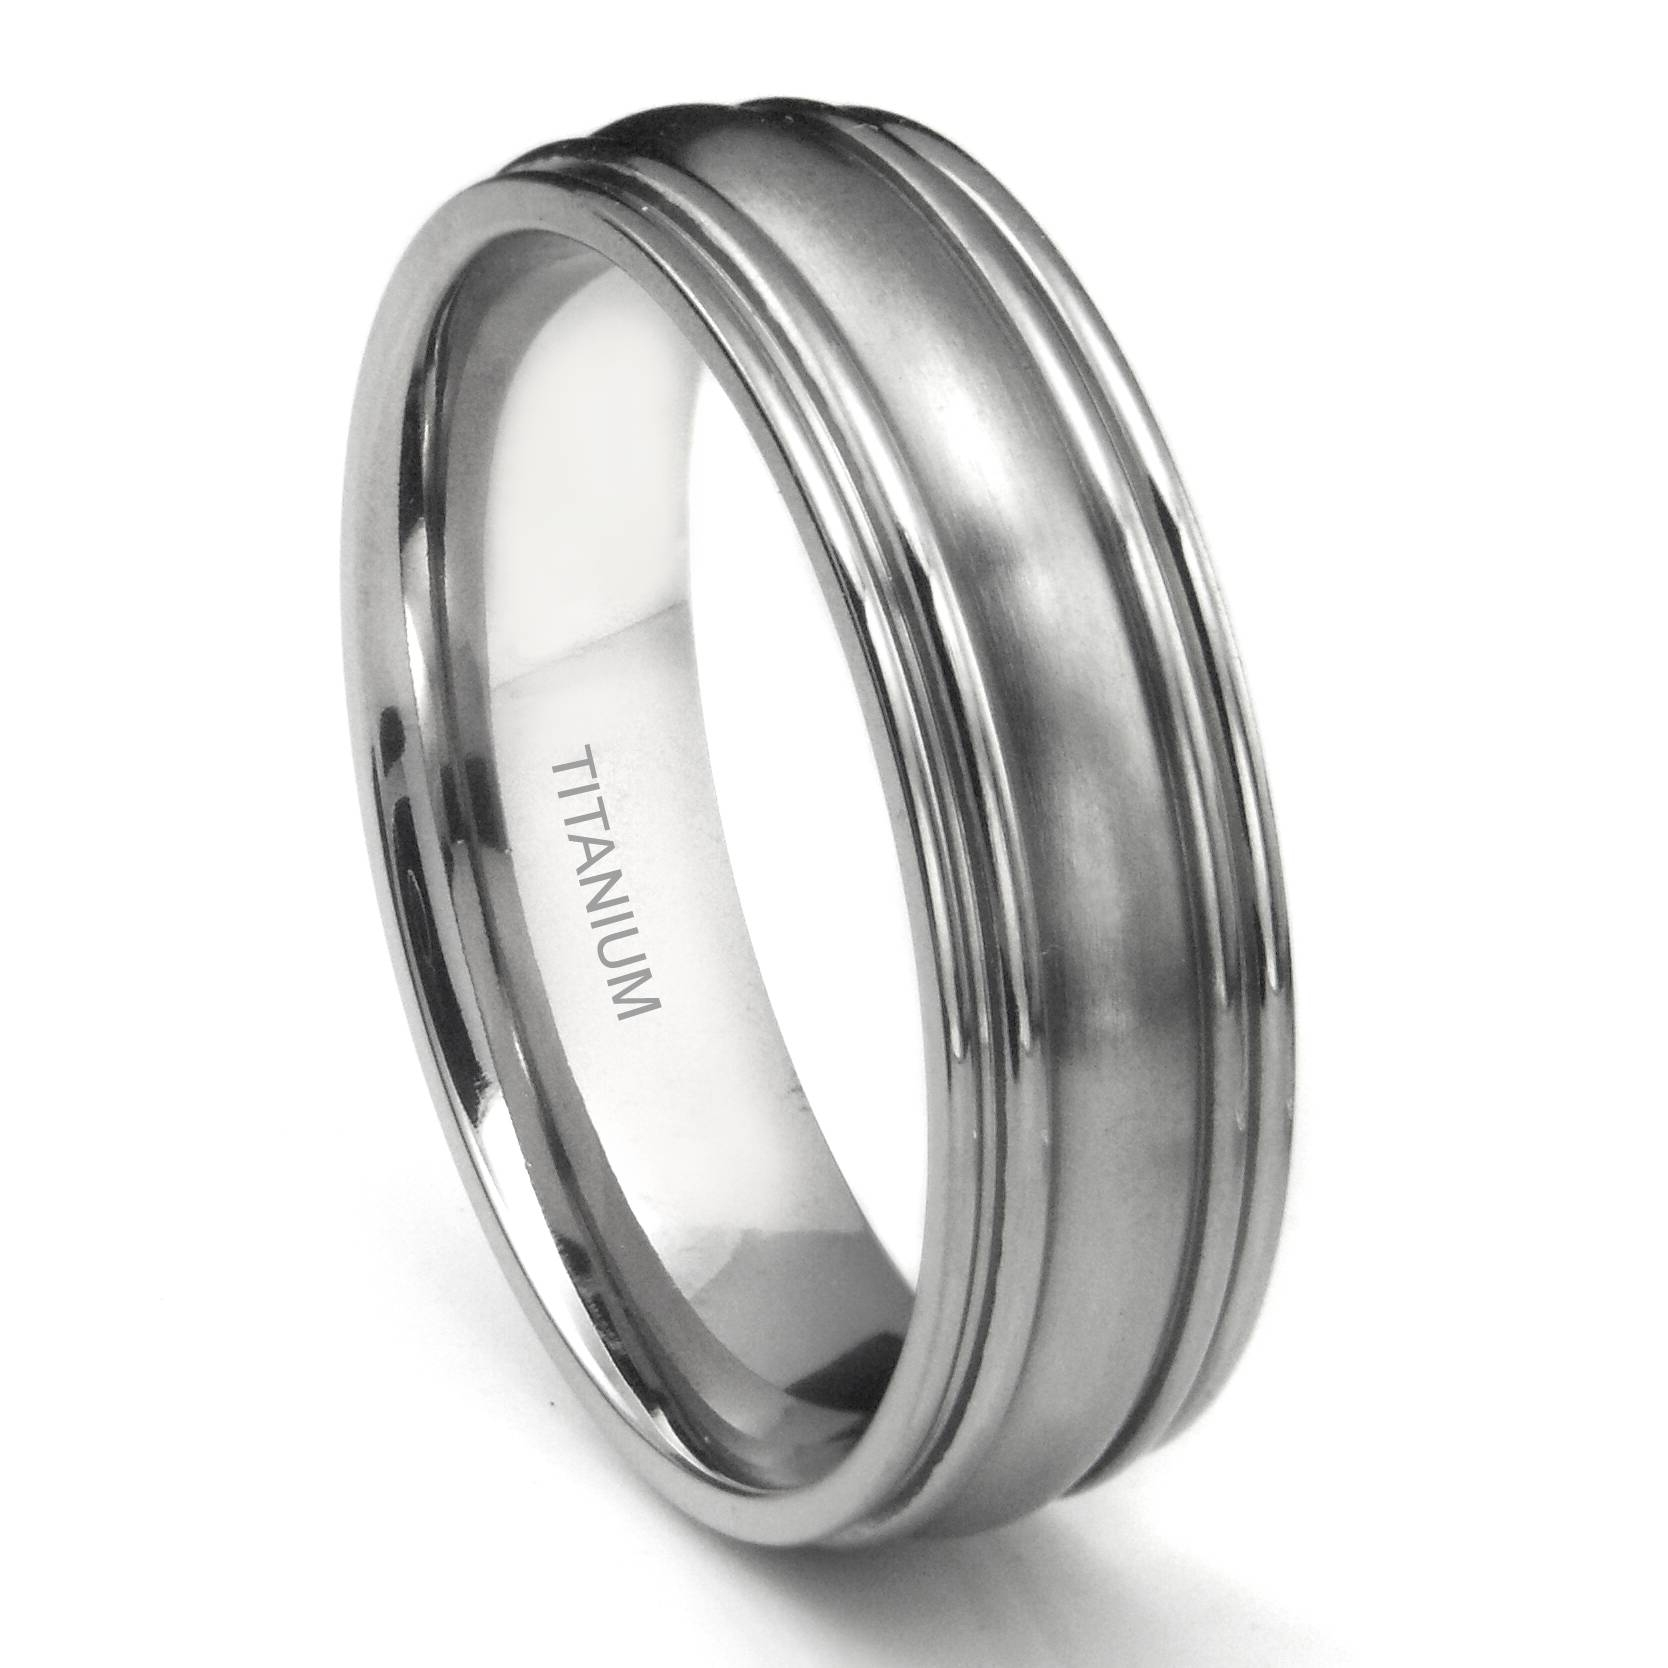 Titanium 7Mm Ribbed Men's Wedding Ring Regarding Titanium Mens Wedding Rings (View 9 of 15)